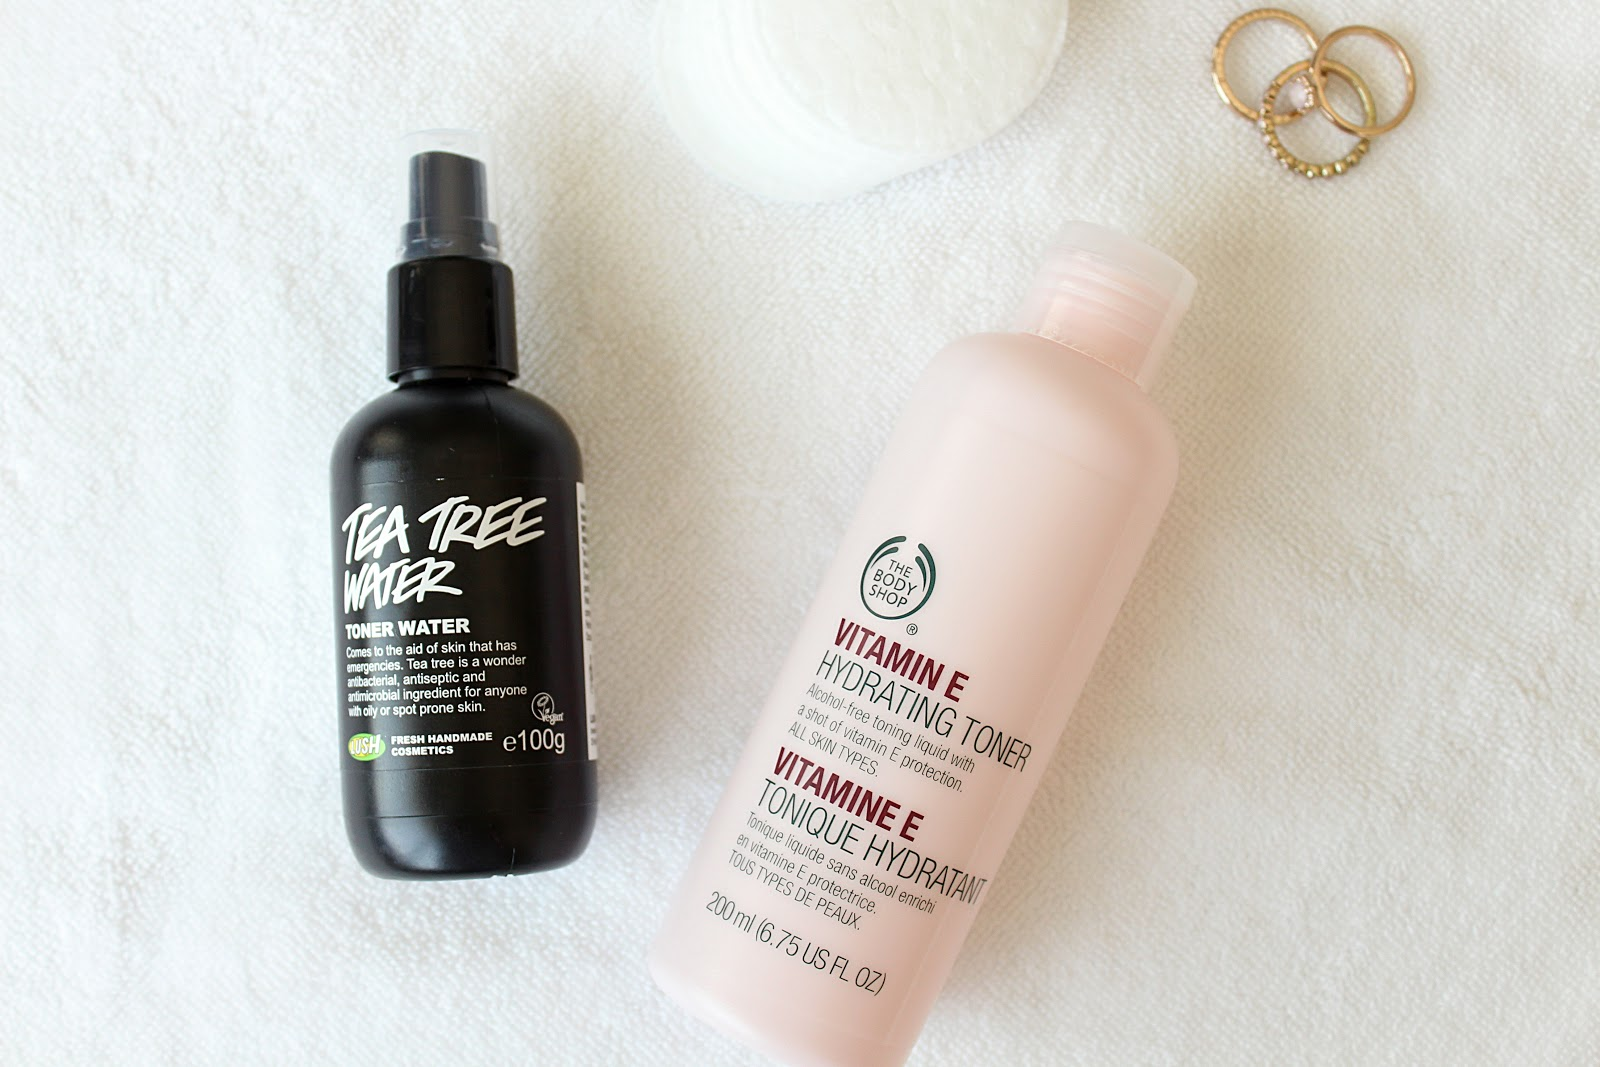 The Body Shop Vitamin E Toner, Lush Tea Tree Toner Water